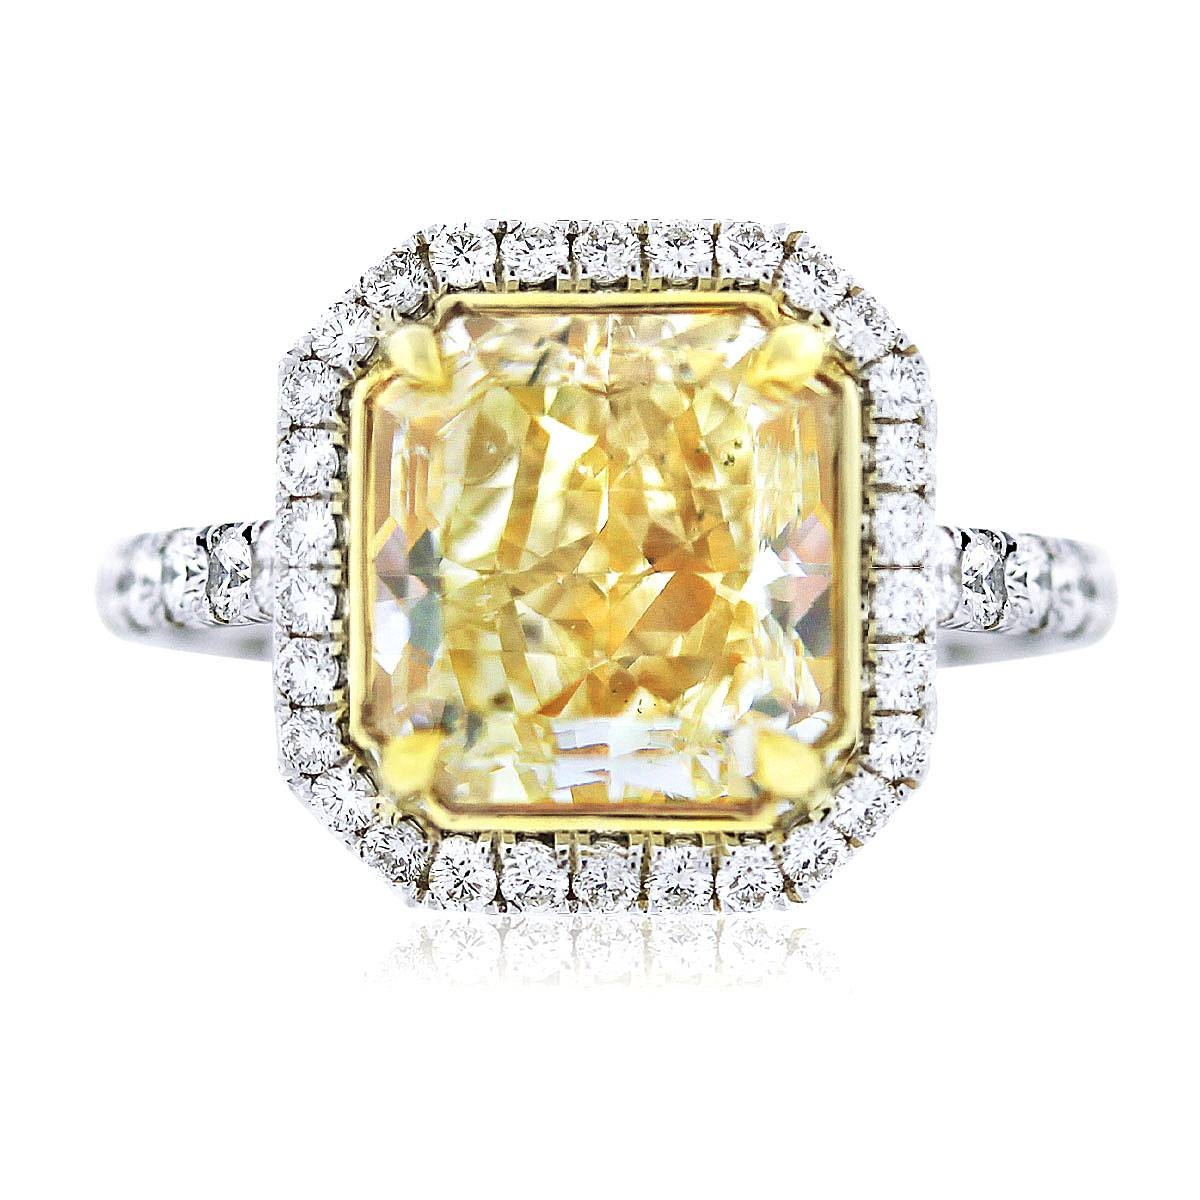 Radiant Cut Diamond Engagement Rings In Rectangular Radiant Cut Diamond Engagement Rings (Gallery 13 of 15)